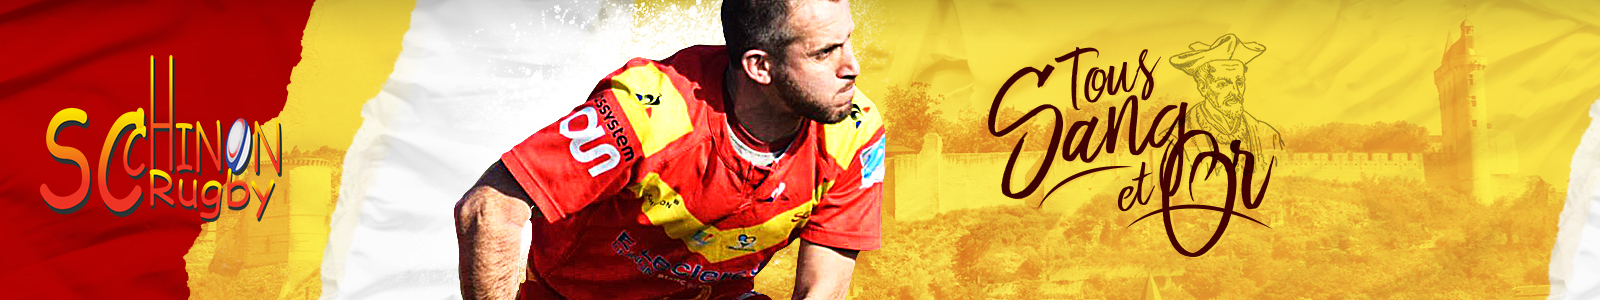 Sporting Club Chinonais Rugby : site officiel du club de rugby de CHINON - clubeo